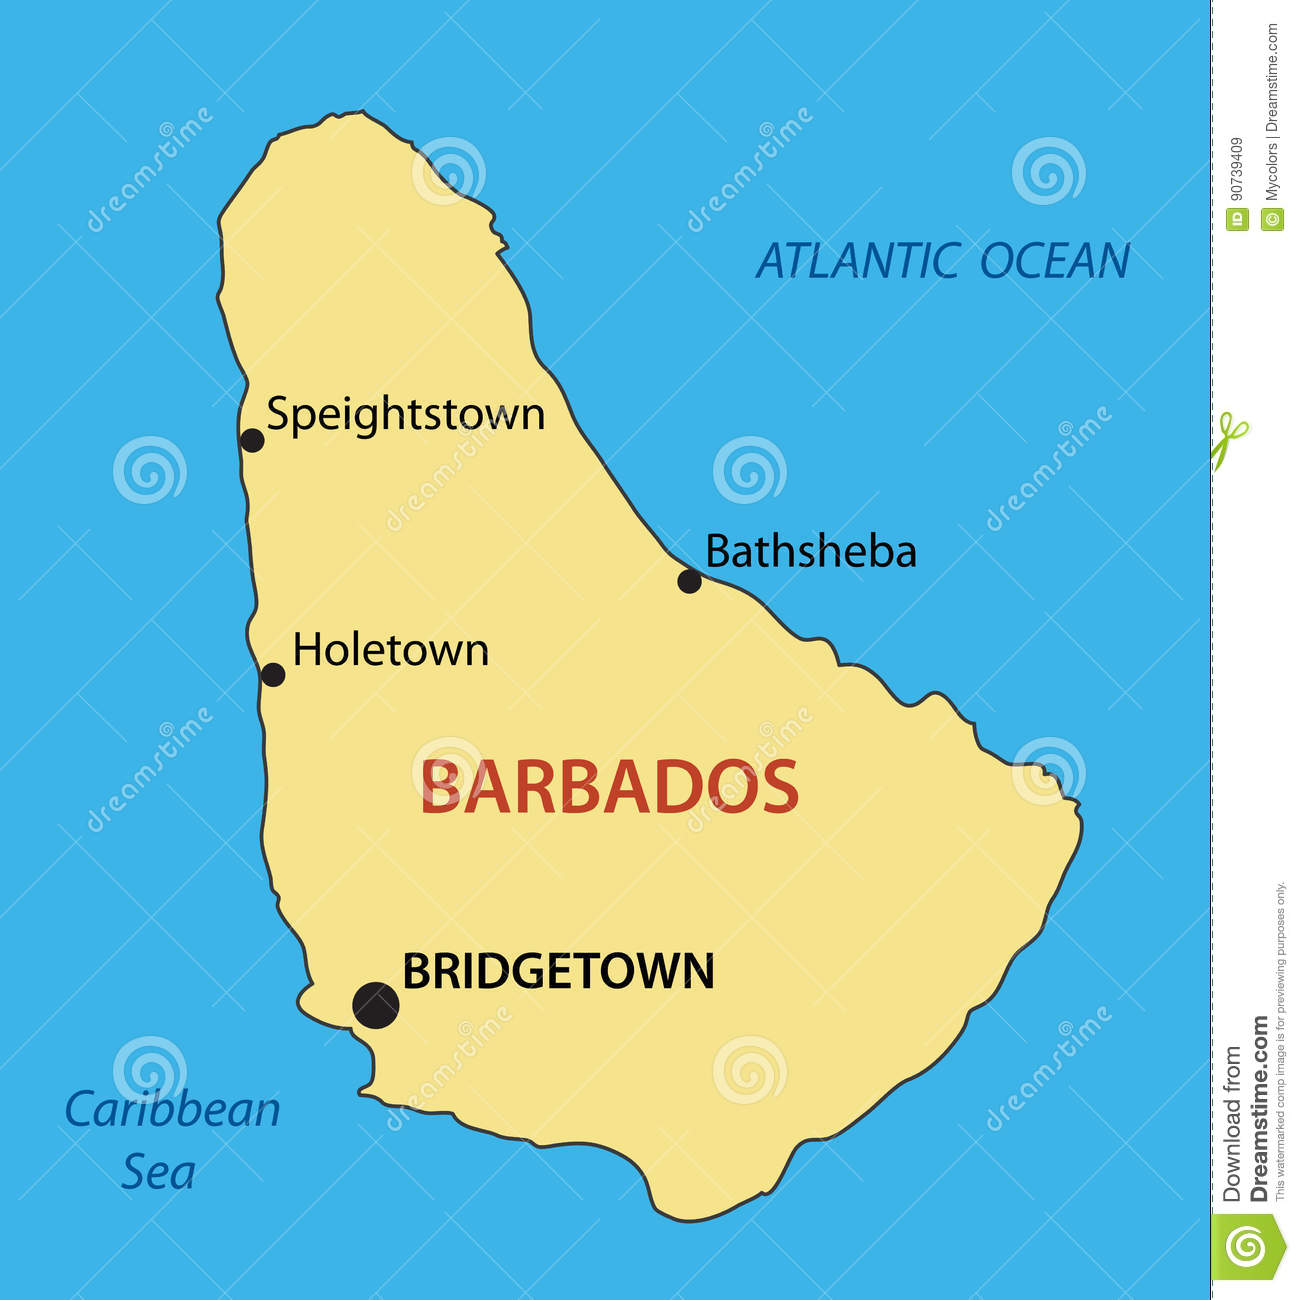 Picture of: Barbados Vector Map Of Country Stock Vector Illustration Of Ocean Light 90739409